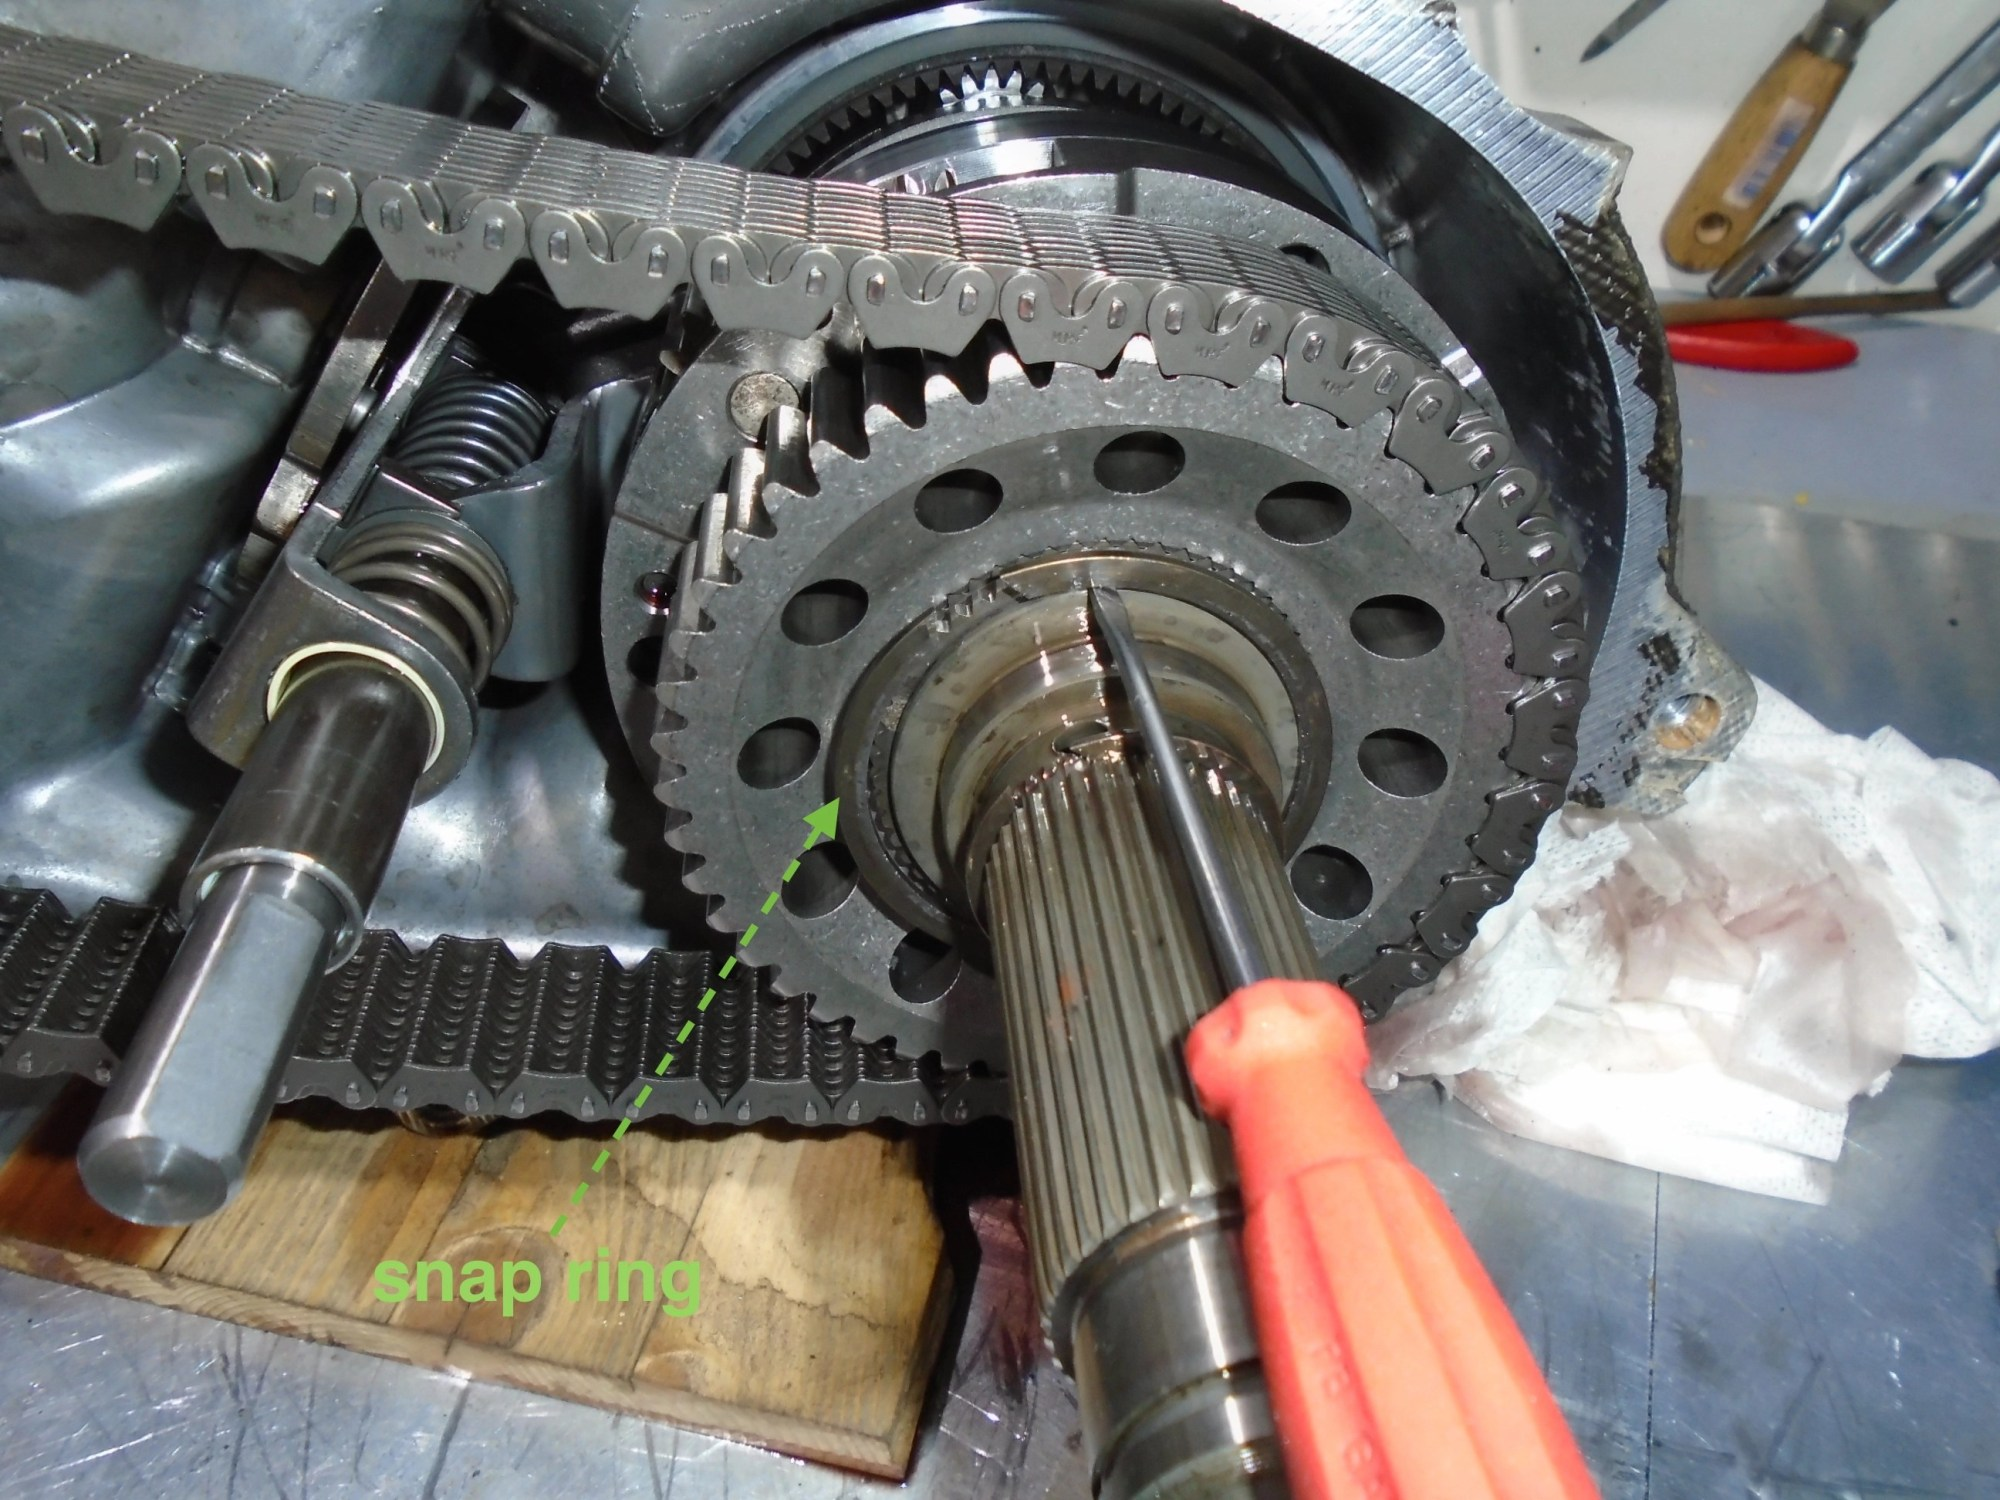 hight resolution of it is easier to remove the chain with this sprocket than the whole main shaft